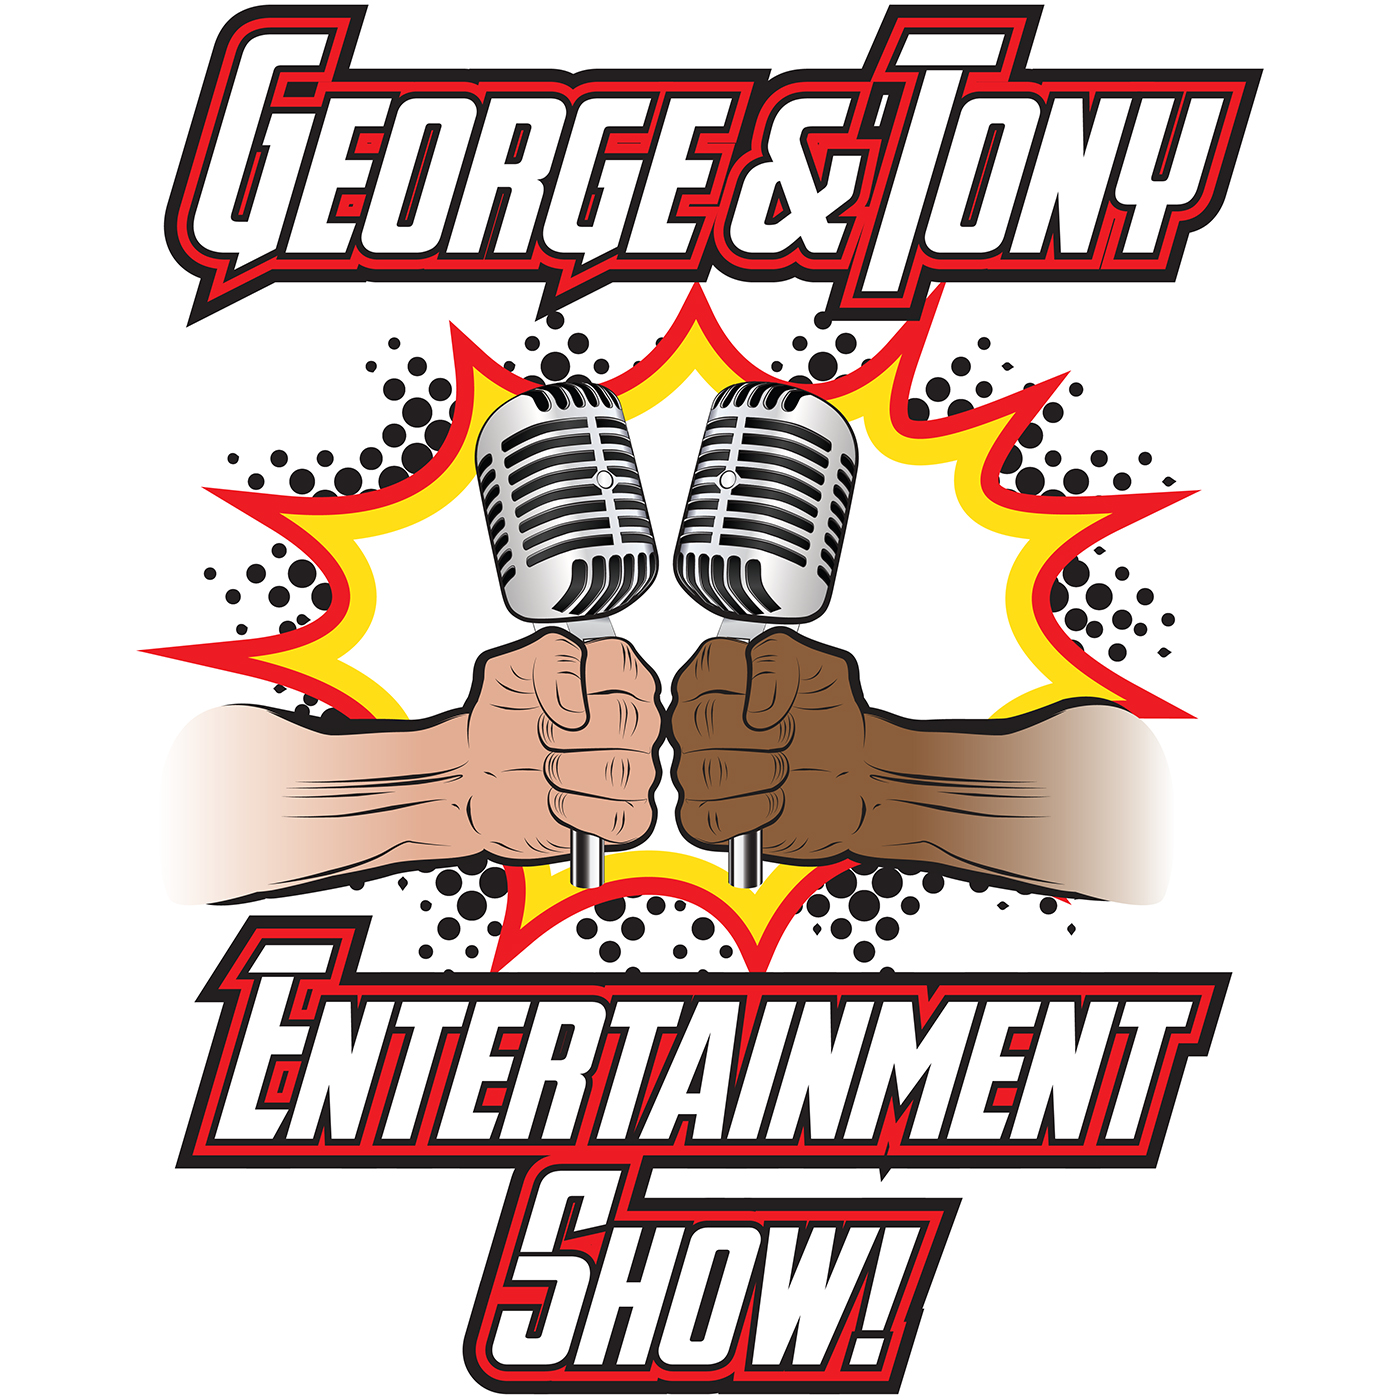 George and Tony Entertainment Show #61